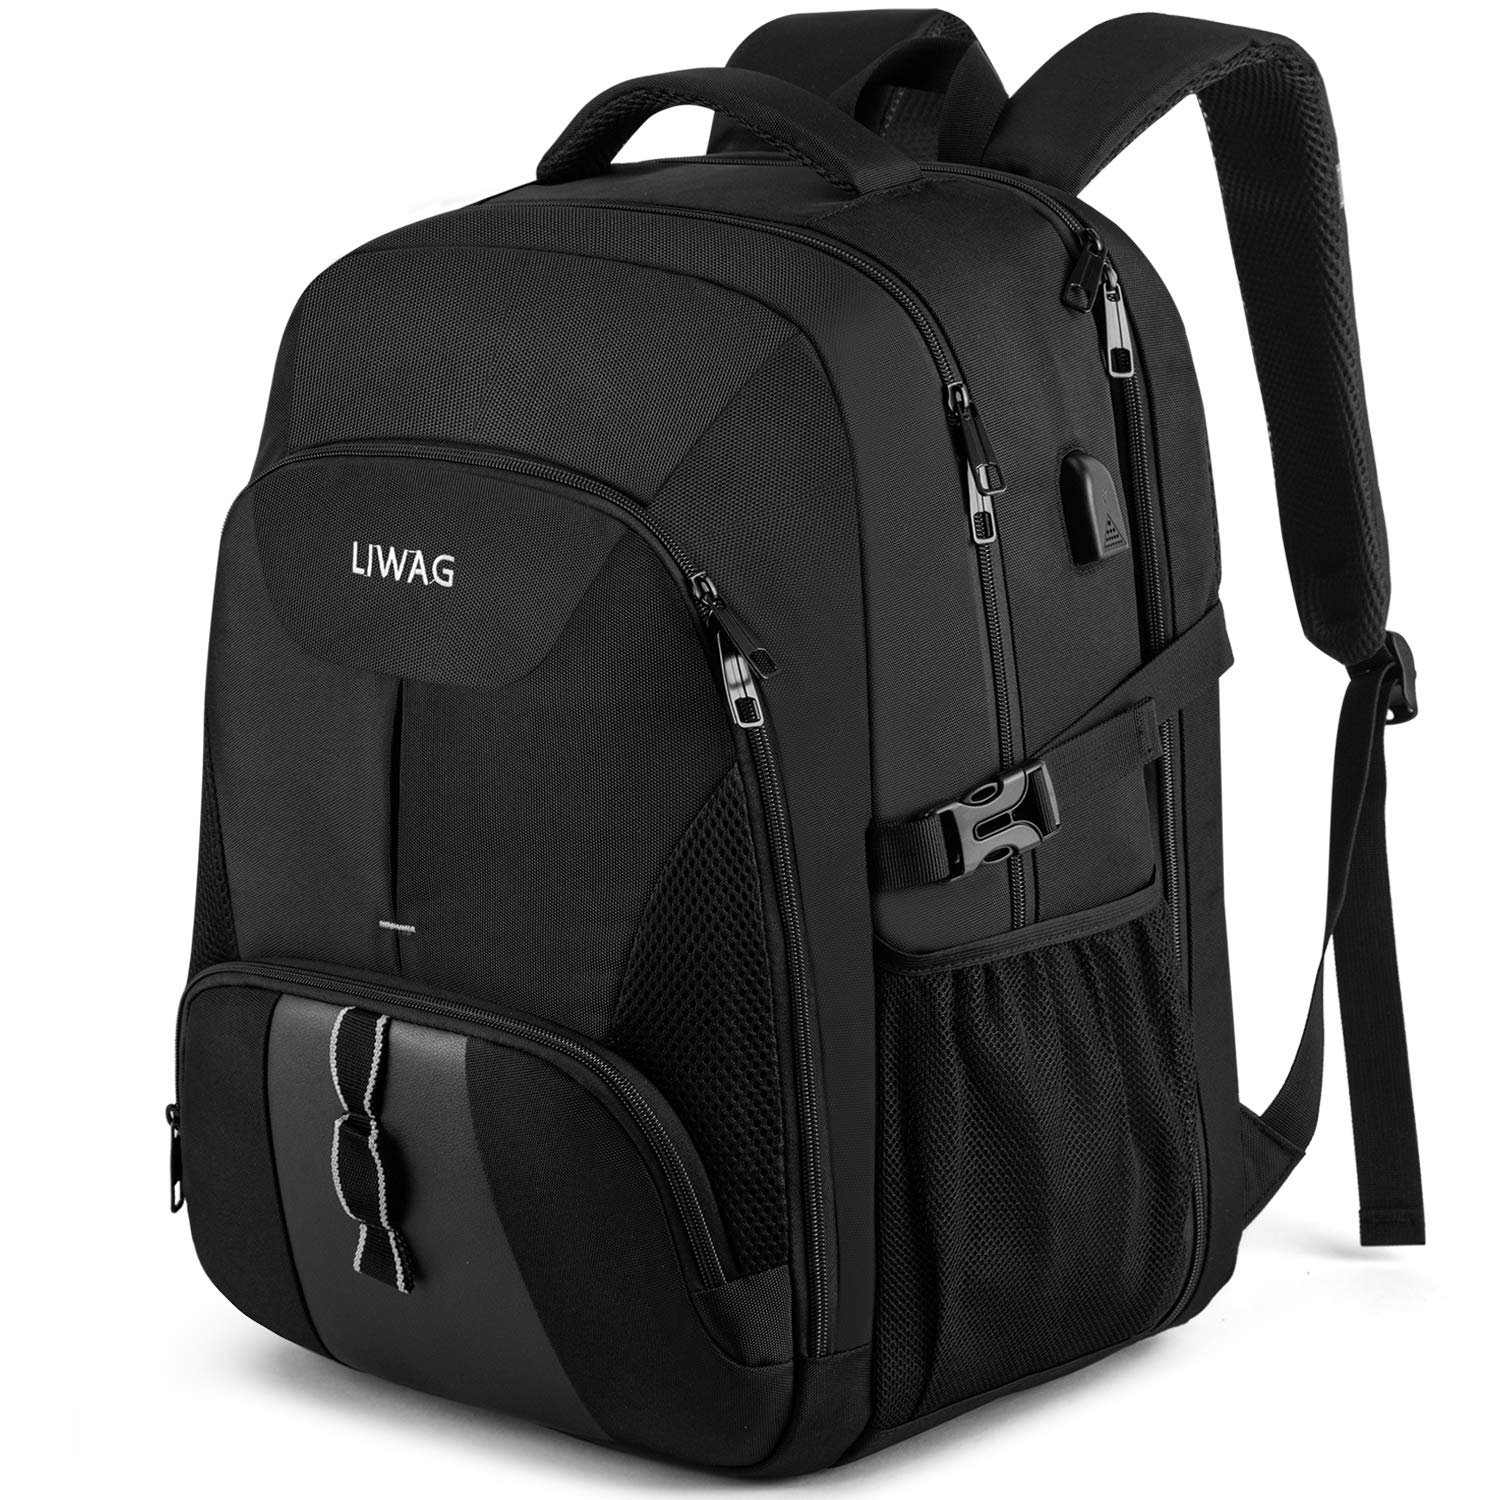 Extra Large 50L Travel Laptop Backpack,Water Resistant Work Backpacks Bag with USB Charging Port, Anti Theft Big Business Backpack, 17 inch Computer Rucksack for Men Women College School Gift -Black